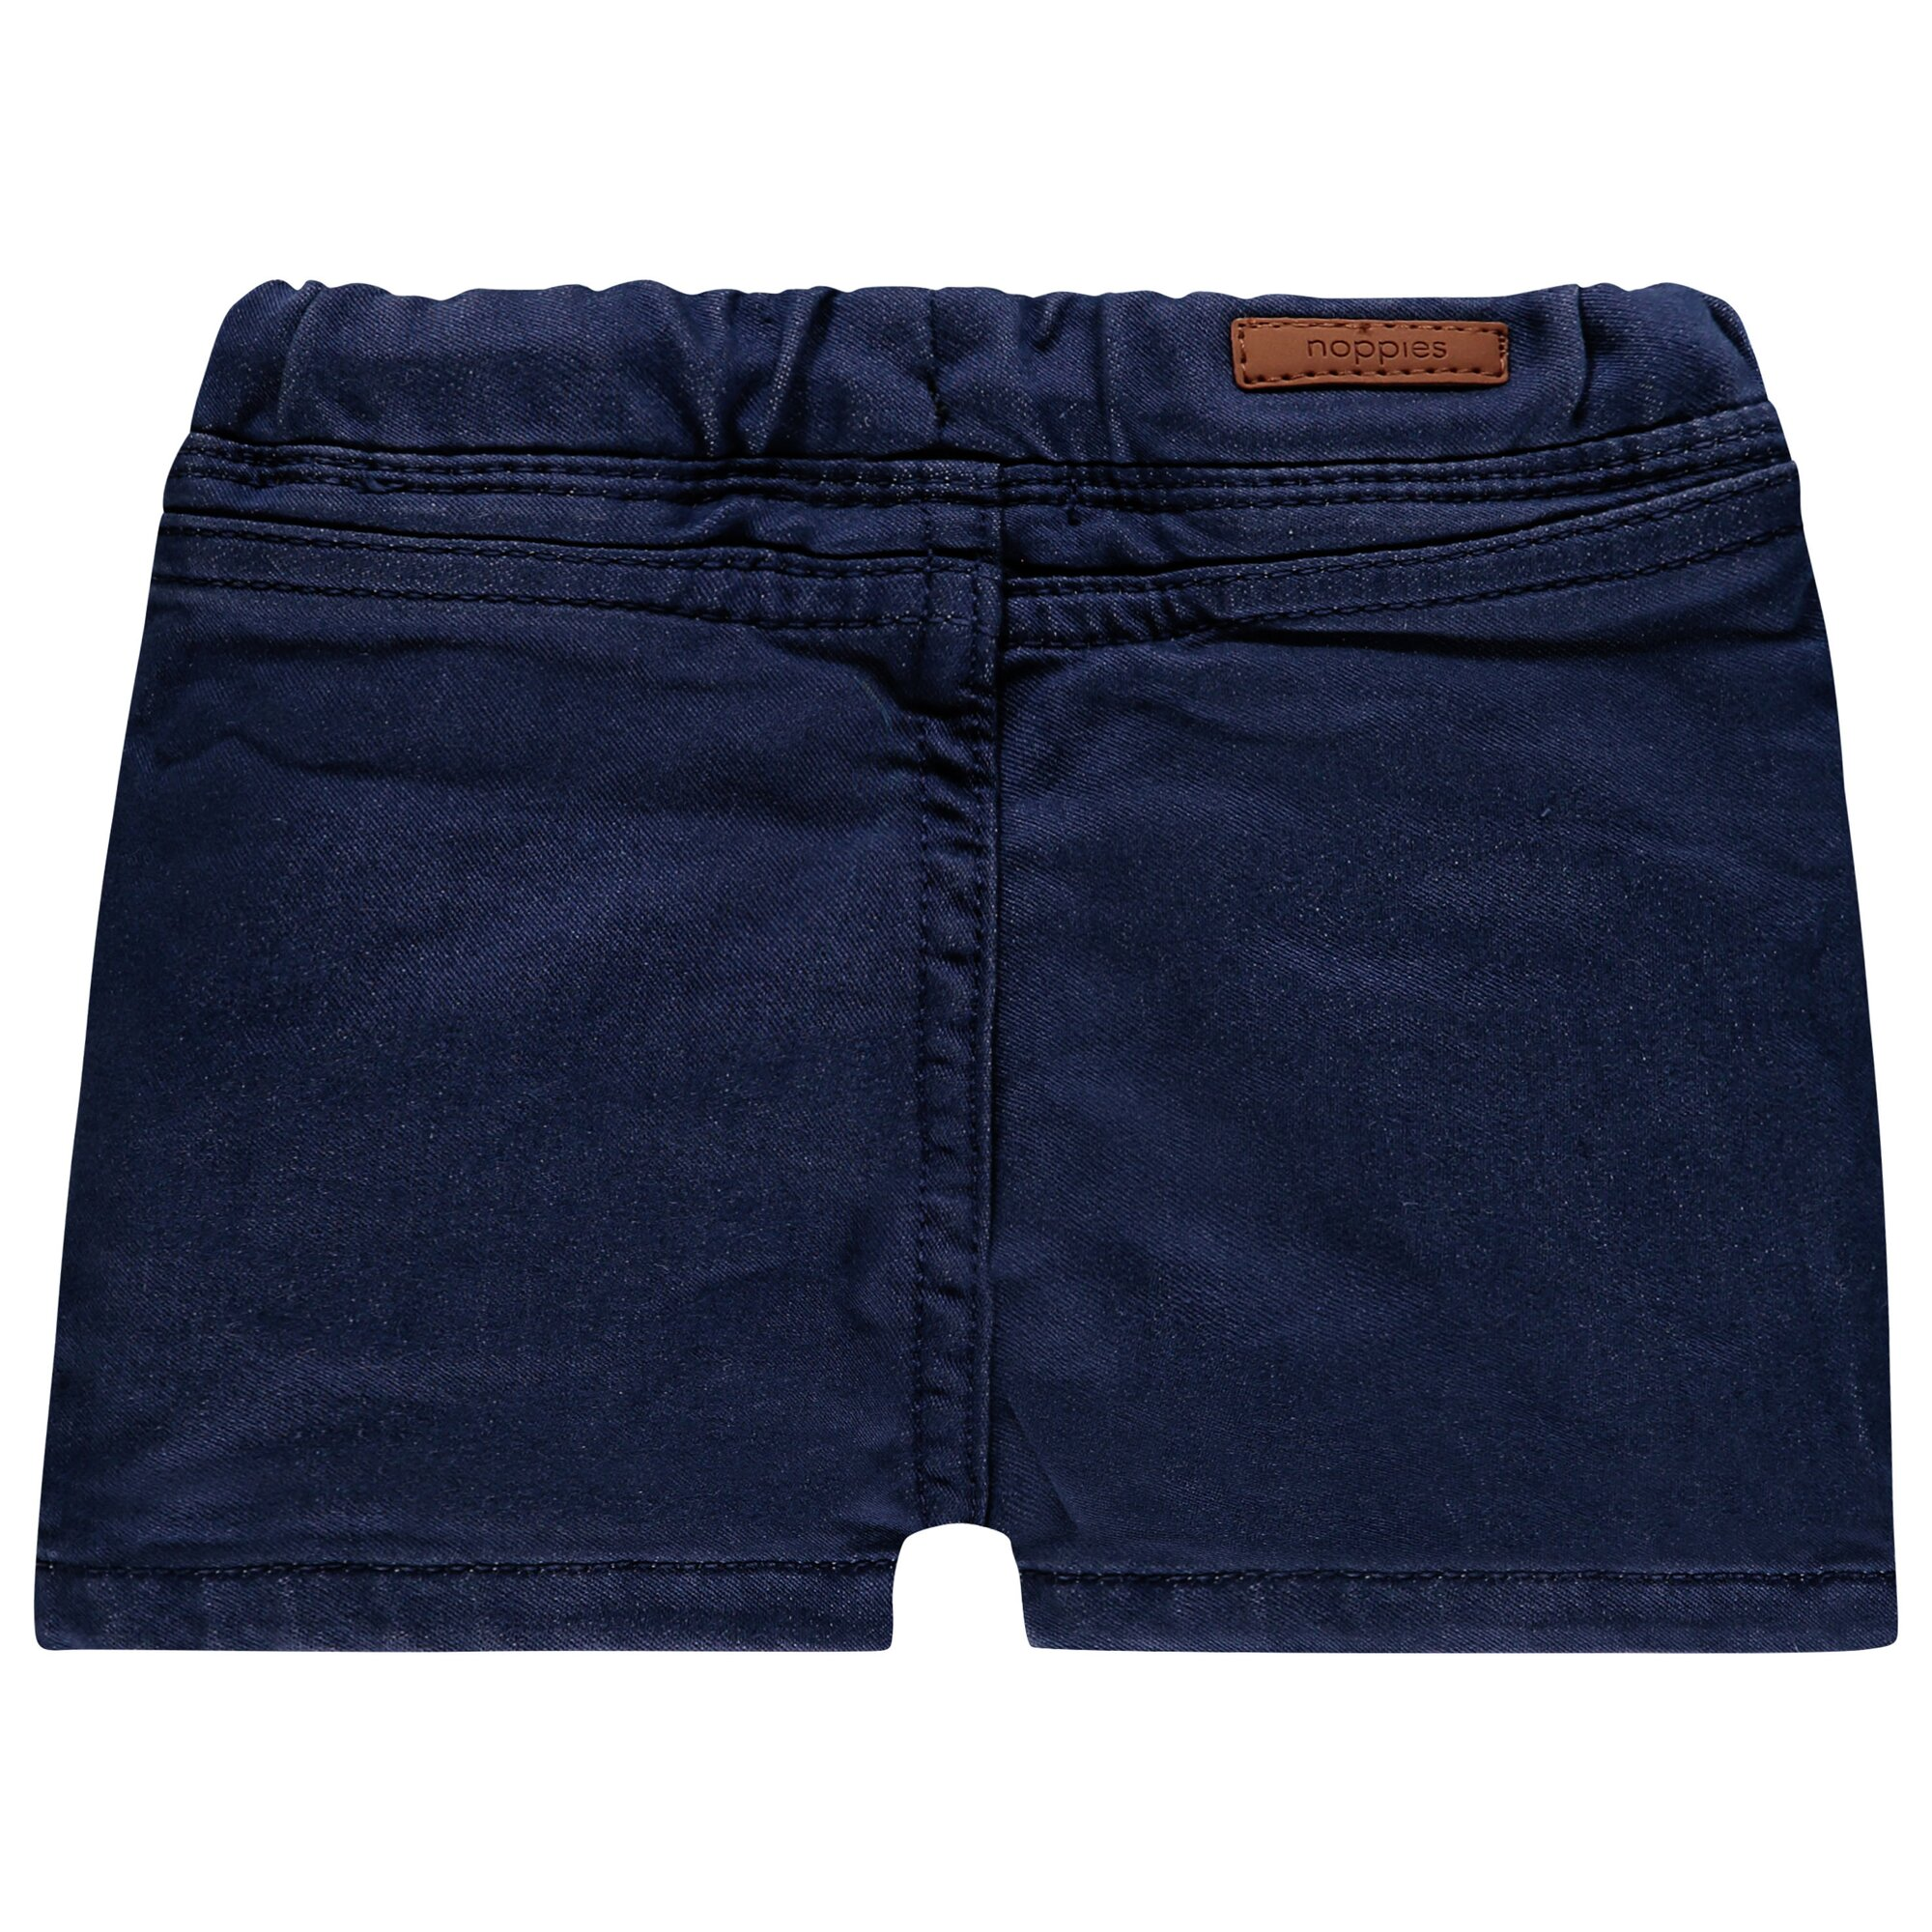 noppies-shorts-suffield